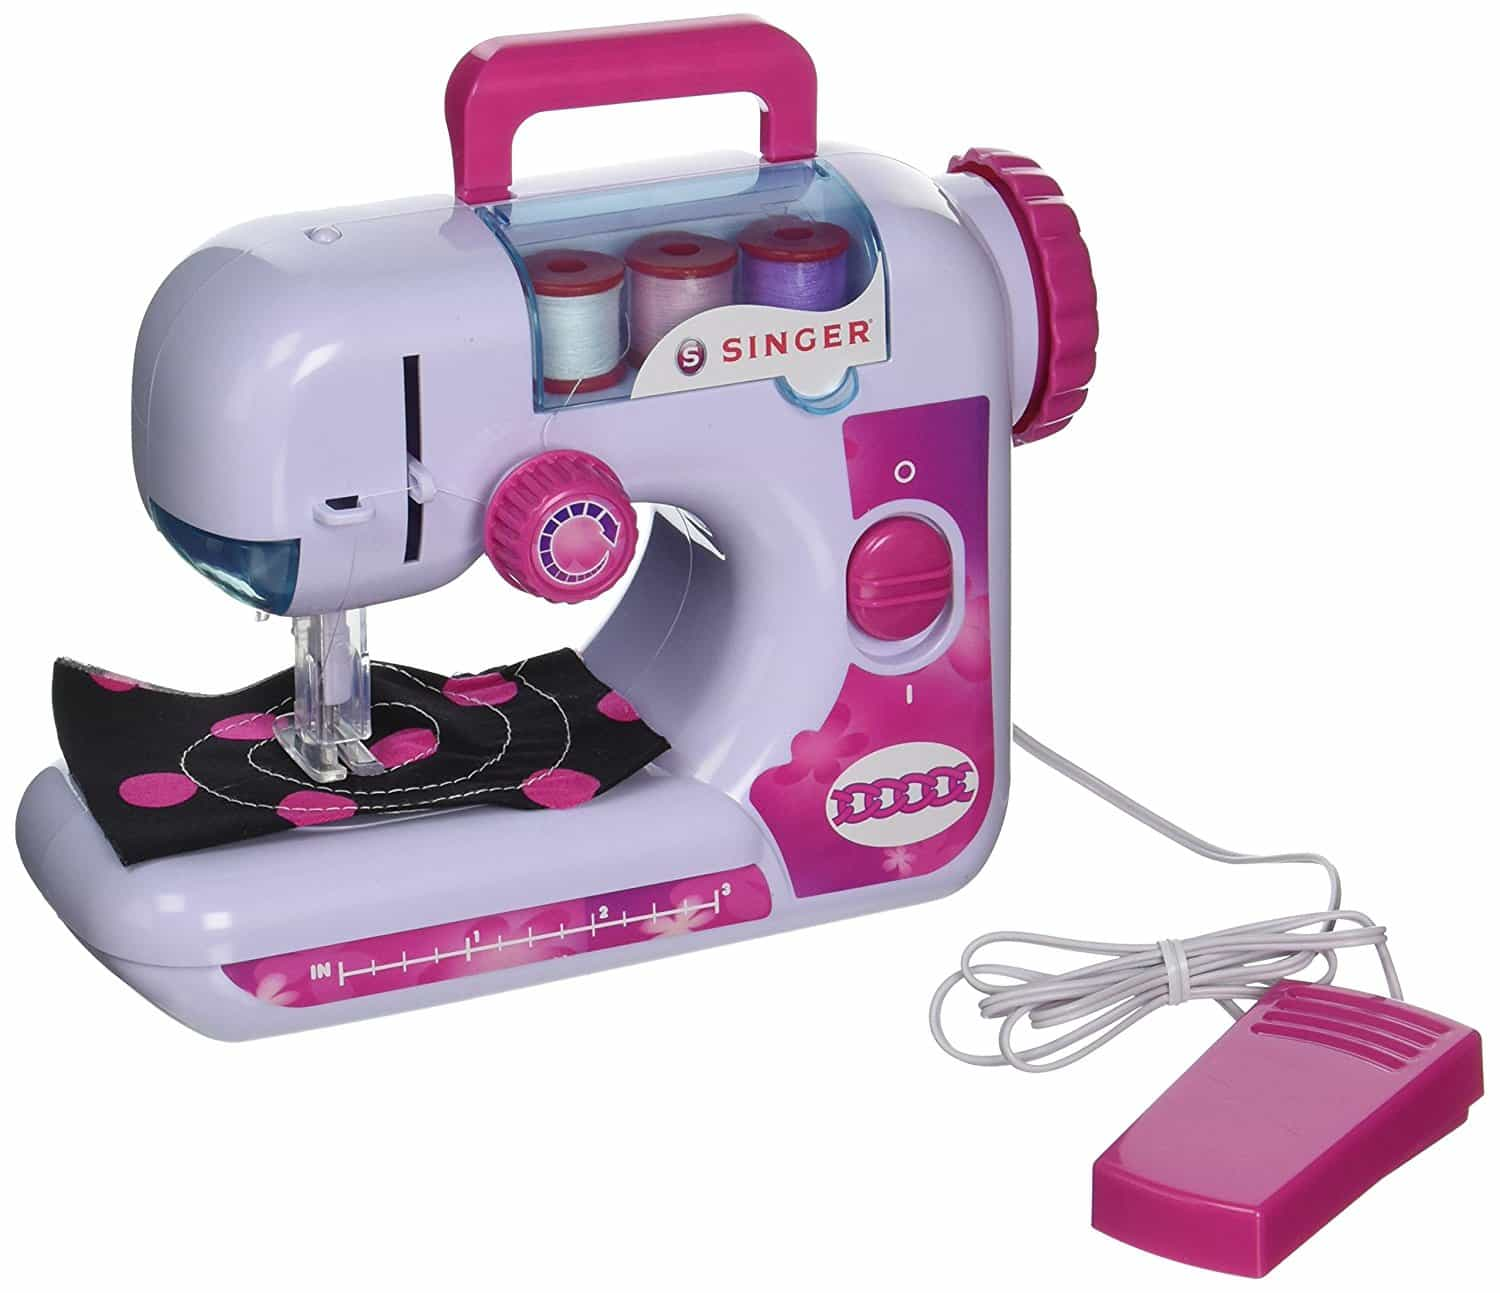 singer ez stitch sewing machine